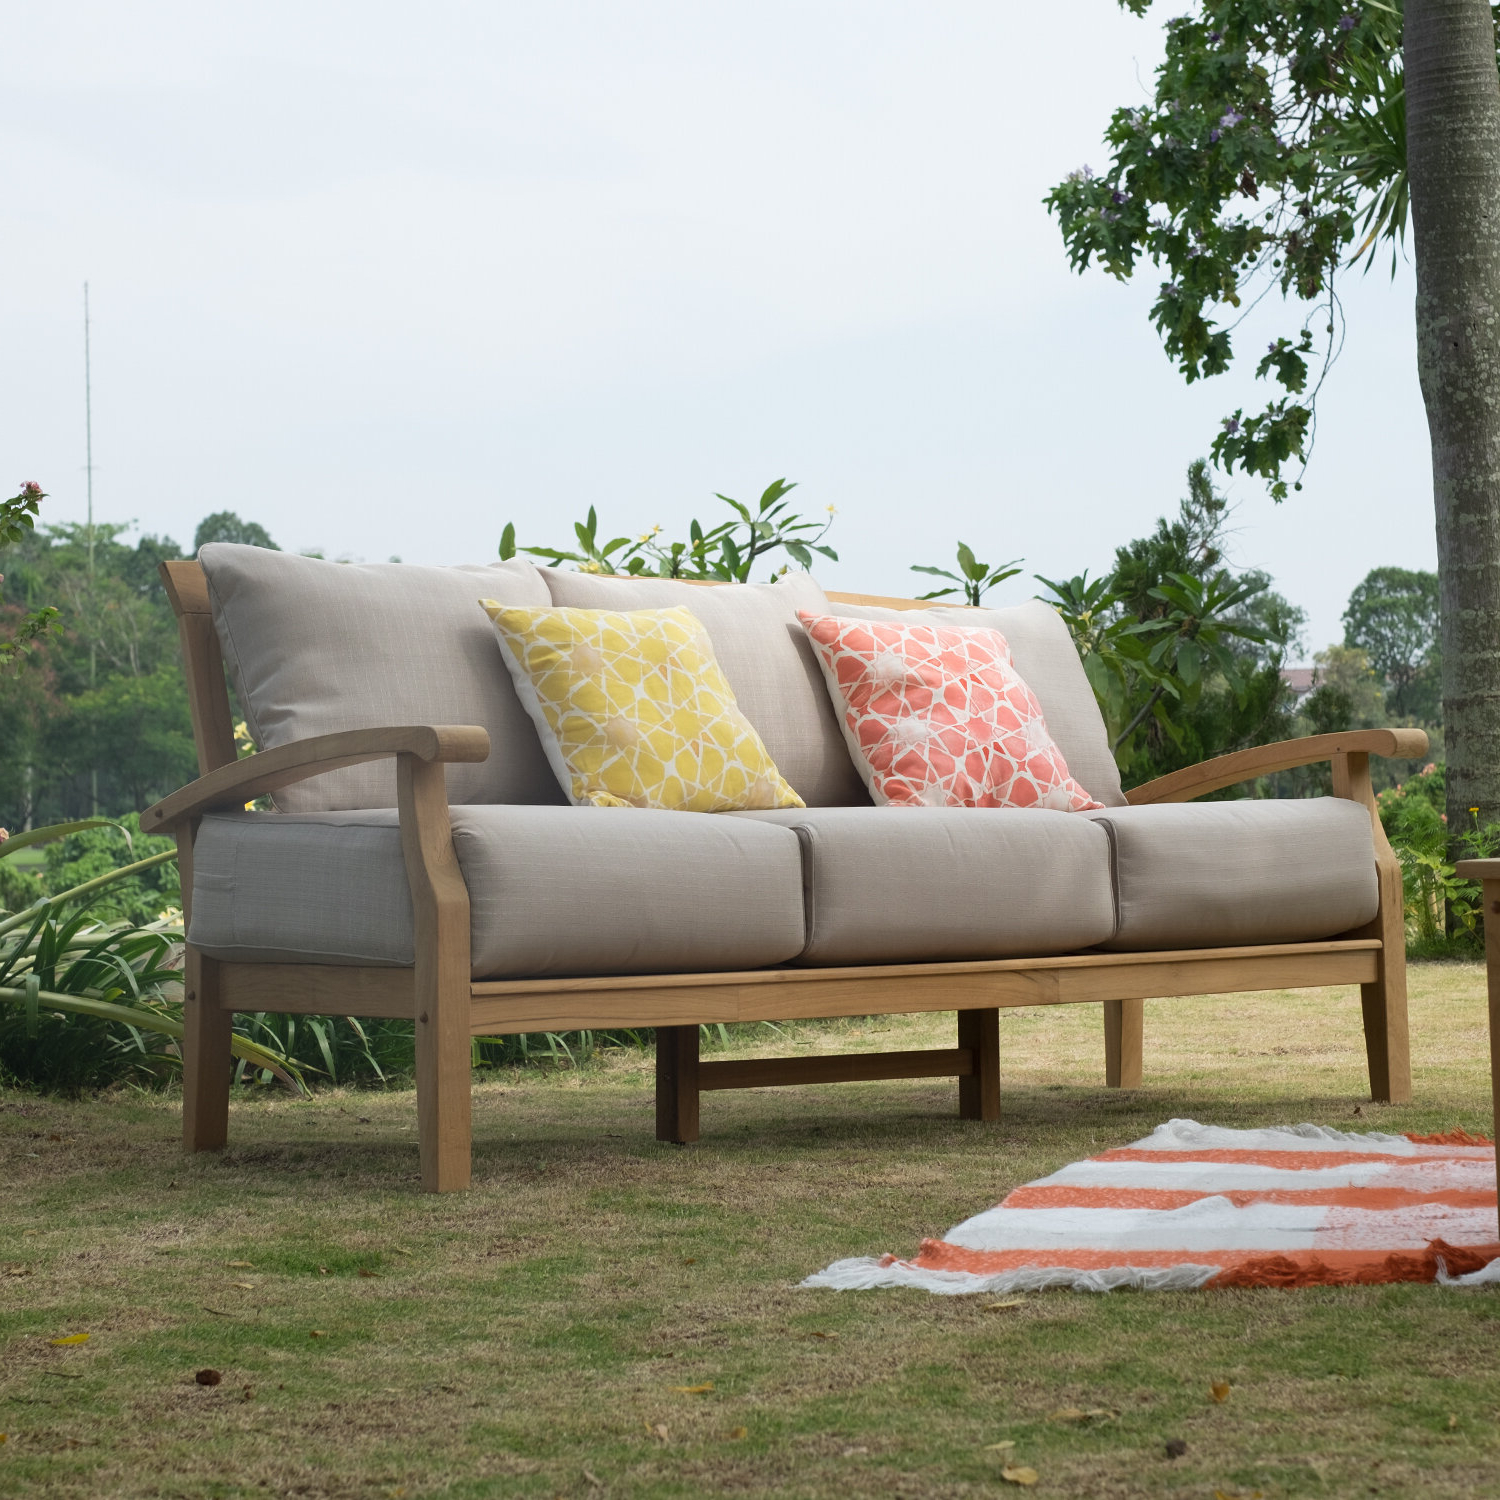 Summerton Teak Patio Sofa With Cushions With Regard To Preferred Summerton Teak Loveseats With Cushions (View 2 of 20)